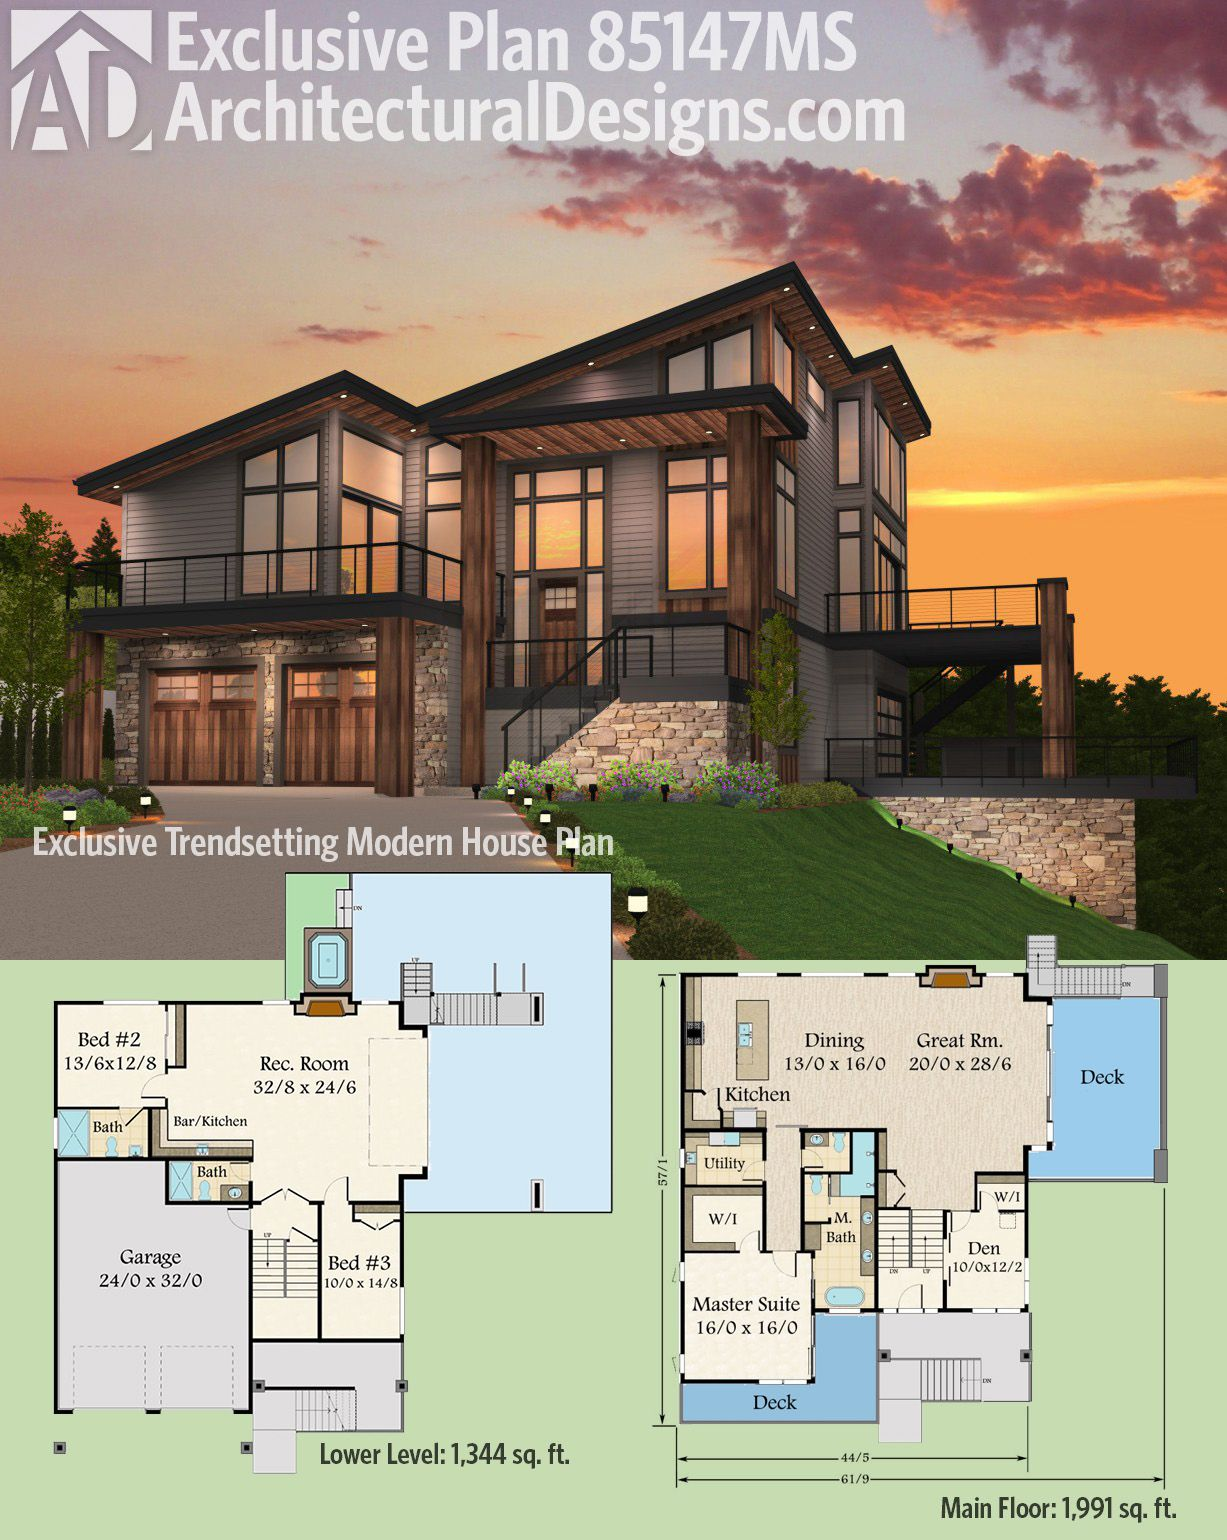 Plan 85147ms Exclusive Trendsetting Modern House In